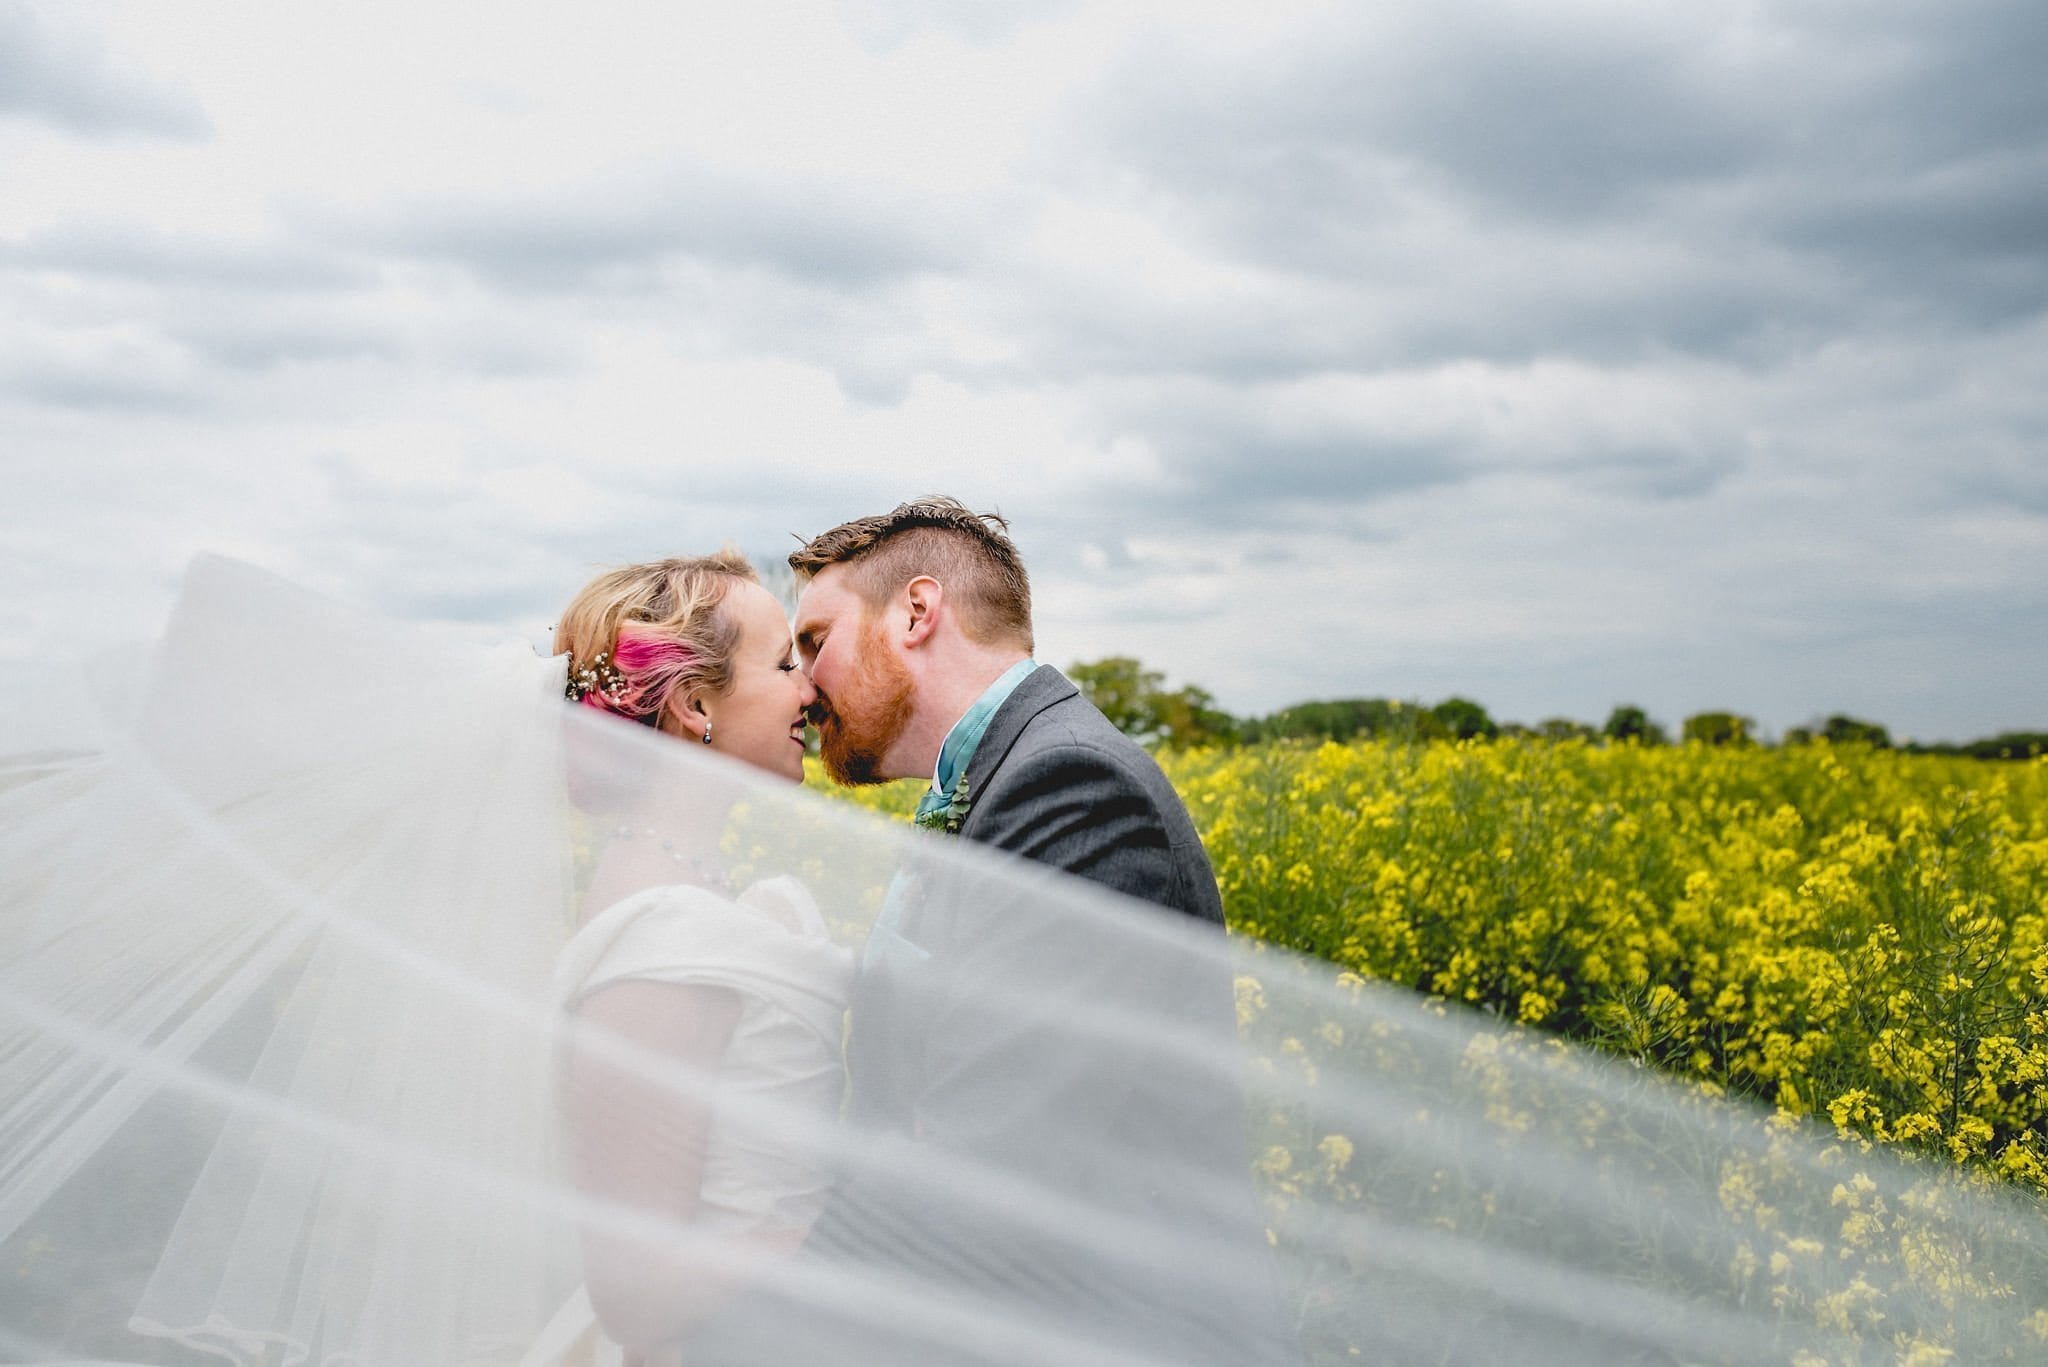 Hatty and Steven kiss, while her veil blows towards the camera. They stand in a field of bright yellow rape seed flowers while dark clouds gather above them